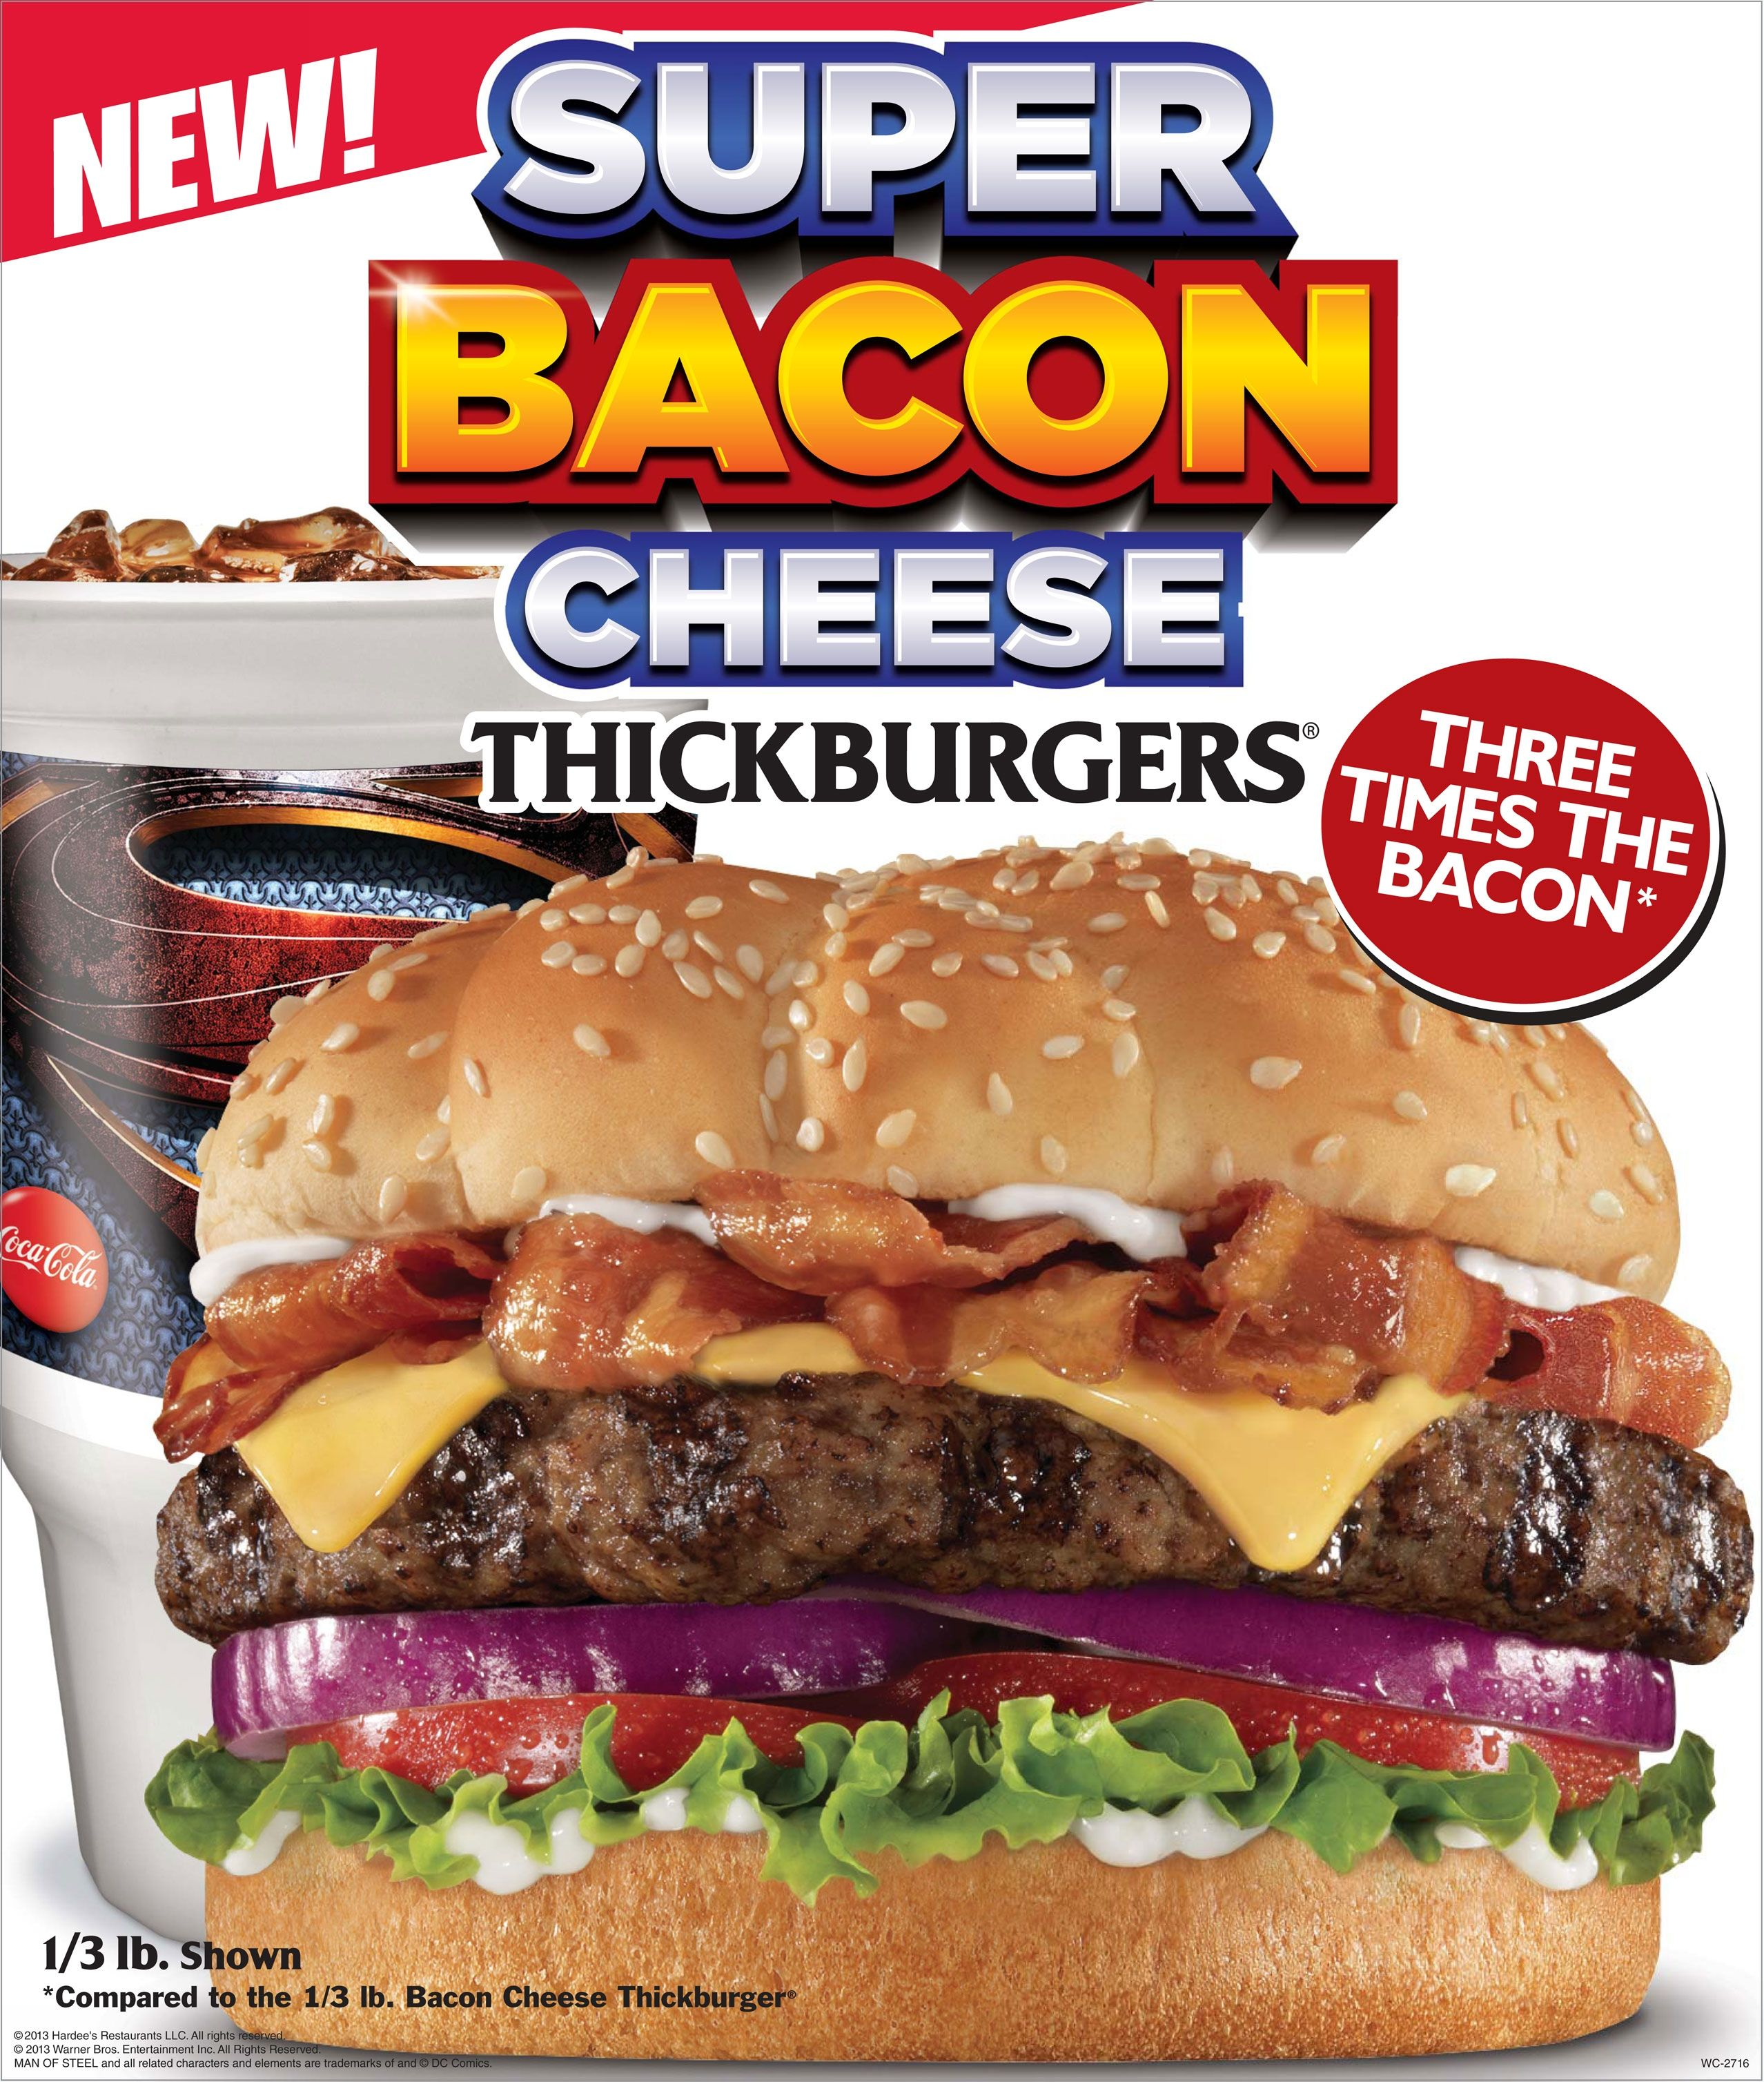 Hardees Present A Super Burger For Super Fans Boasting Six Slices Of Bacon